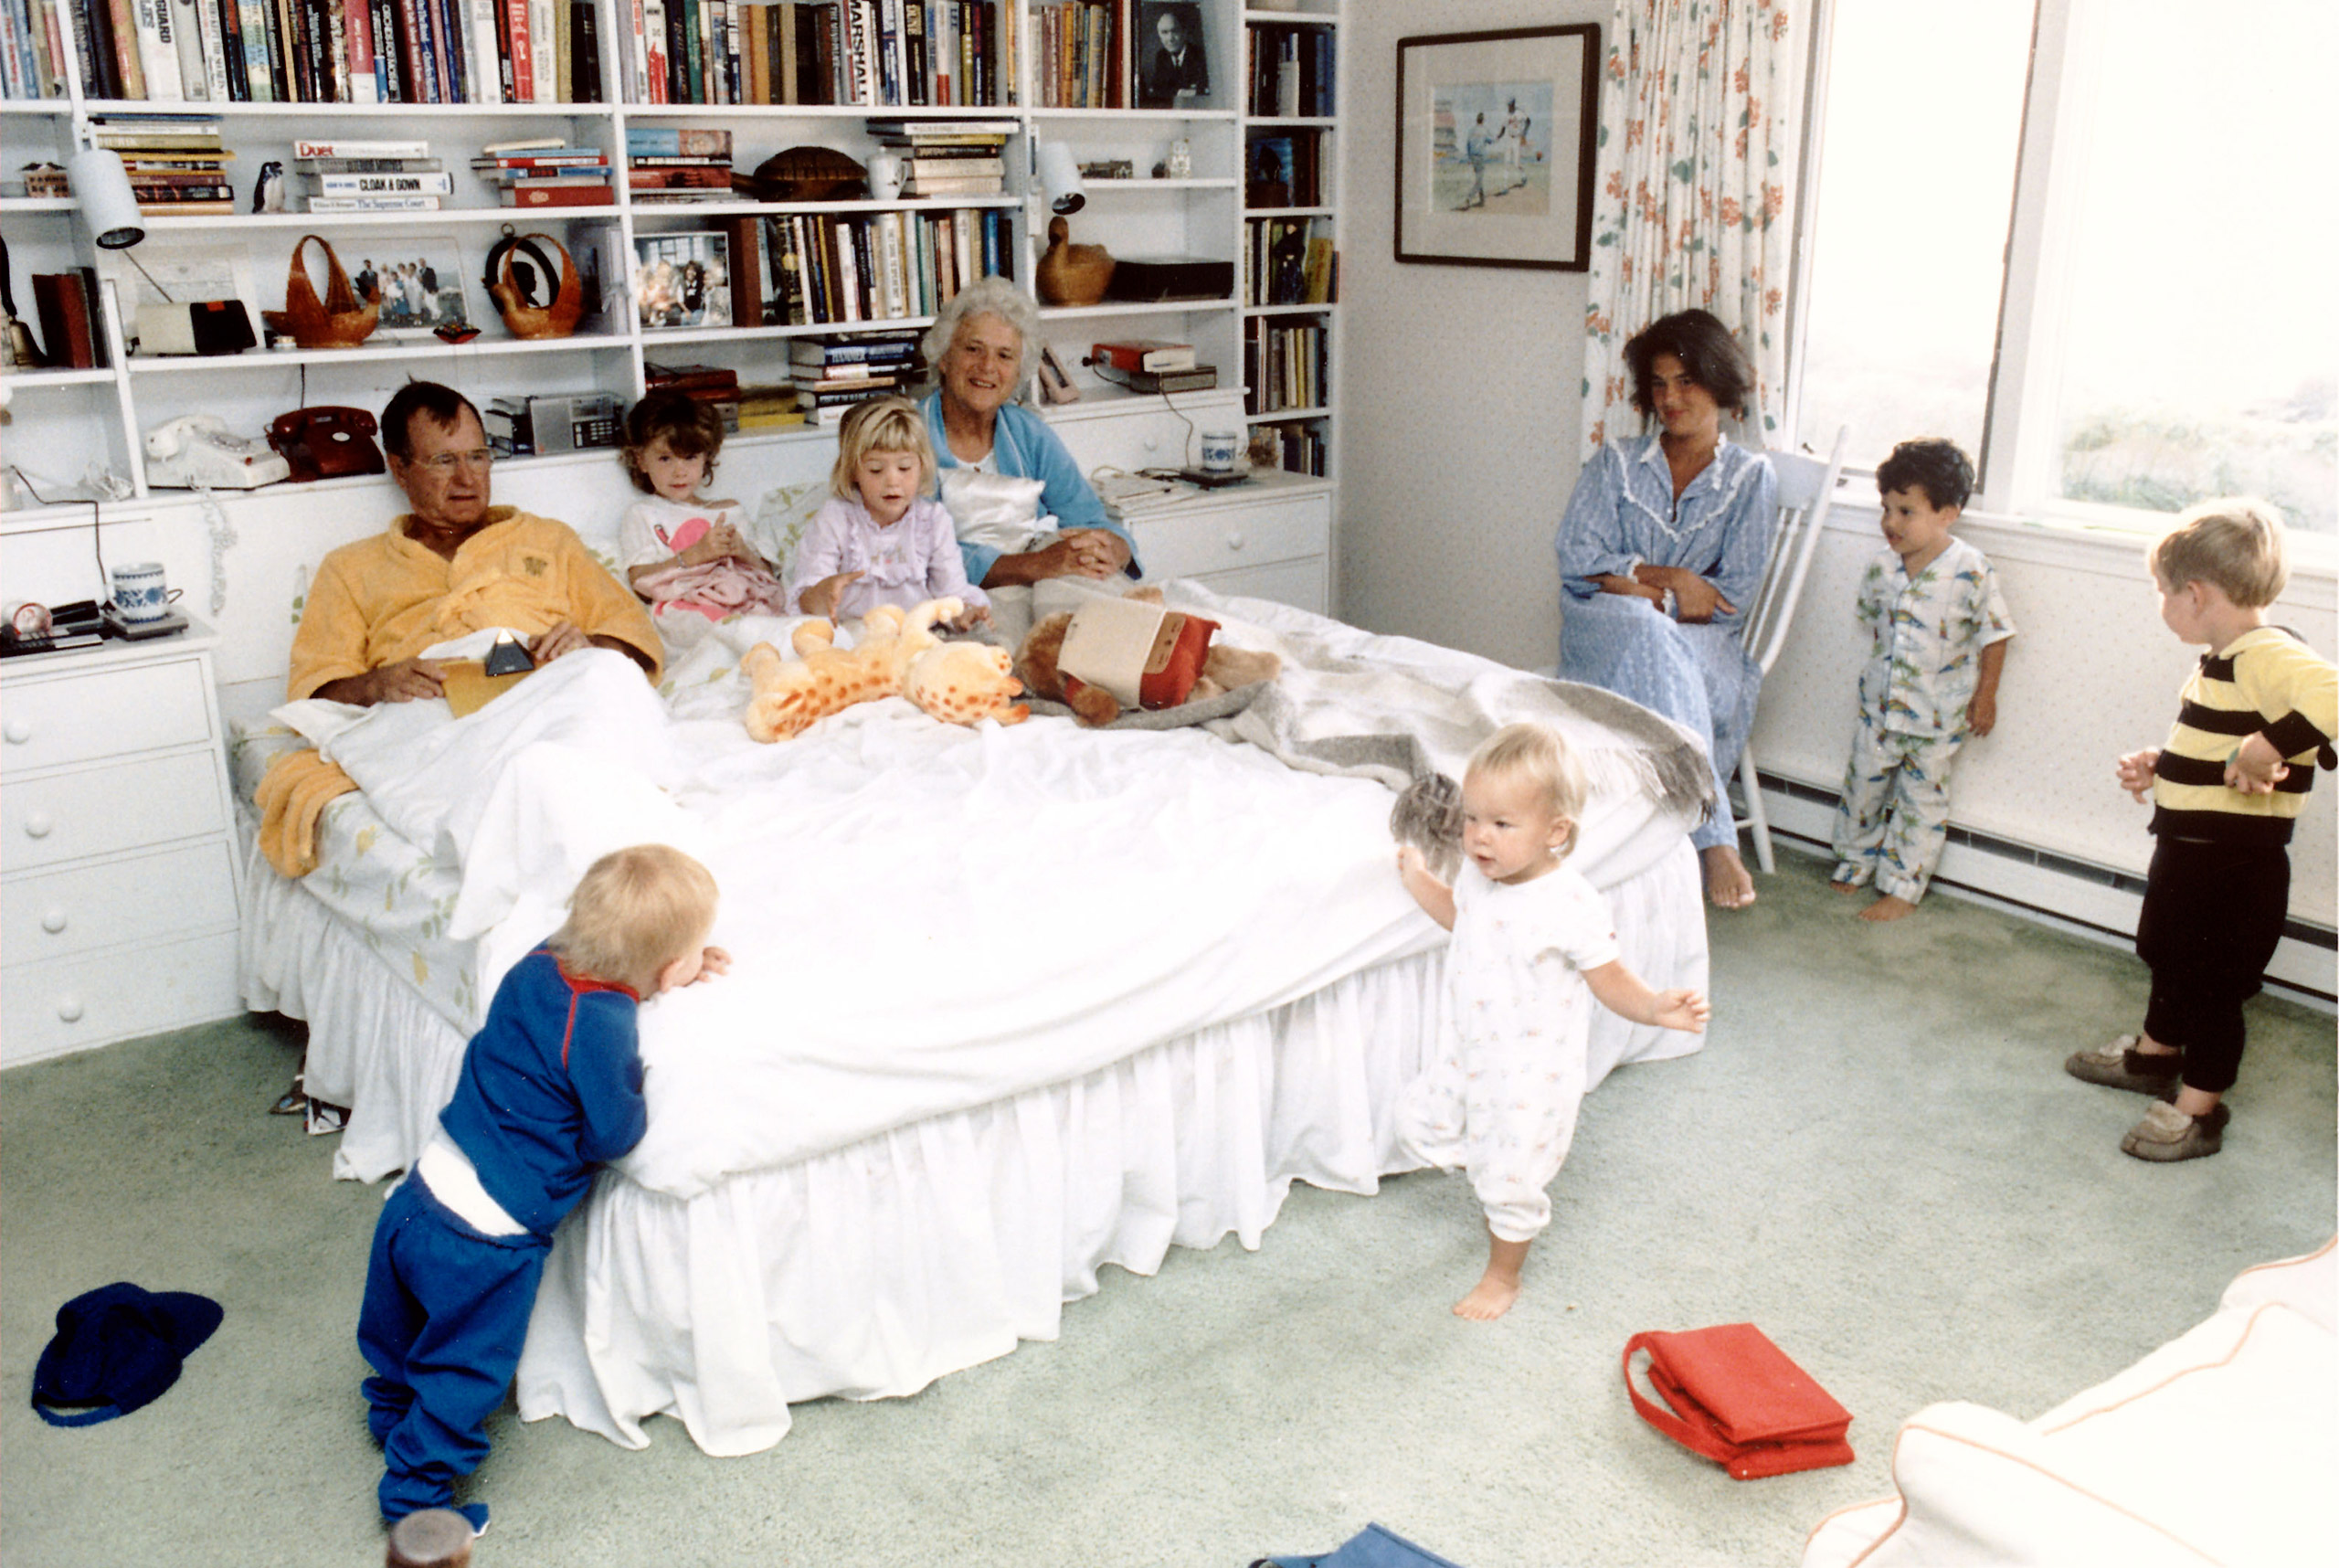 President George H.W. and Barbara Bush with their grandchildren (L-R) Pierce, twins Barbara and Jenna (in bed), Marshall, Jeb. Jr. and Sam LeBlond in the bedroom of their summer home at Walker's Point in Kennebunkport, Maine,  in 1987.